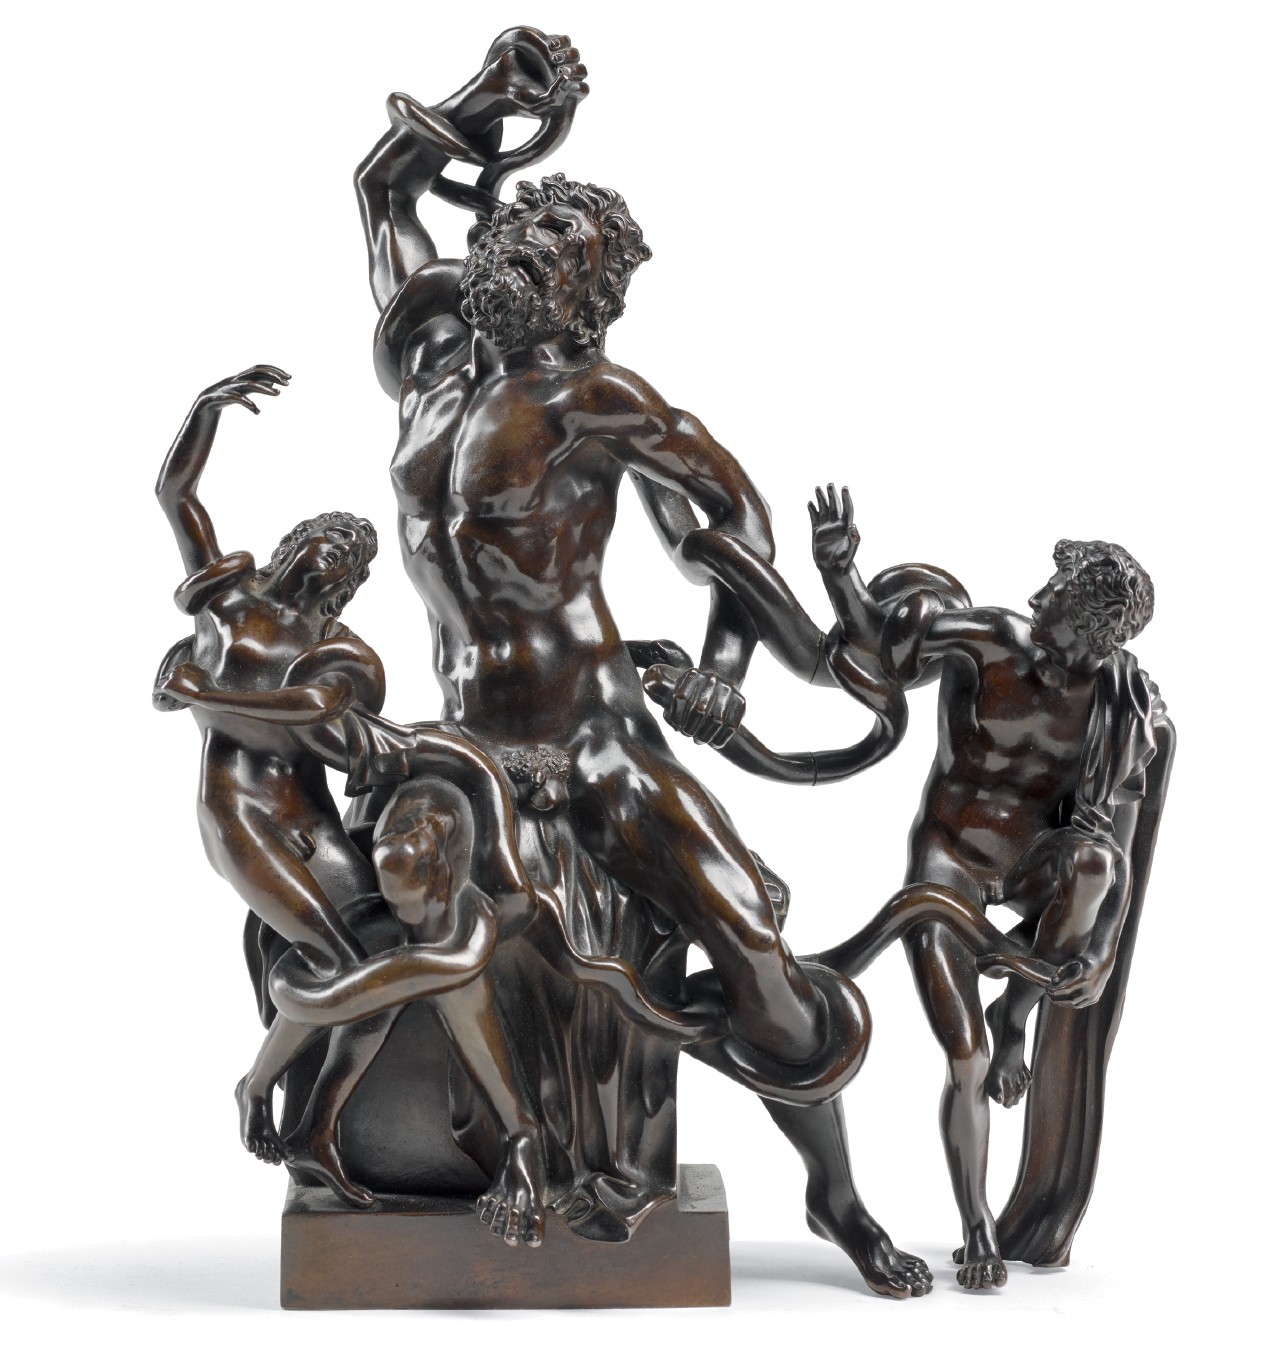 ITALIAN OR FRENCH, LATE 18TH/ EARLY 19TH CENTURY, AFTER THE ANTIQUE | LAOCOON AND HIS SONS